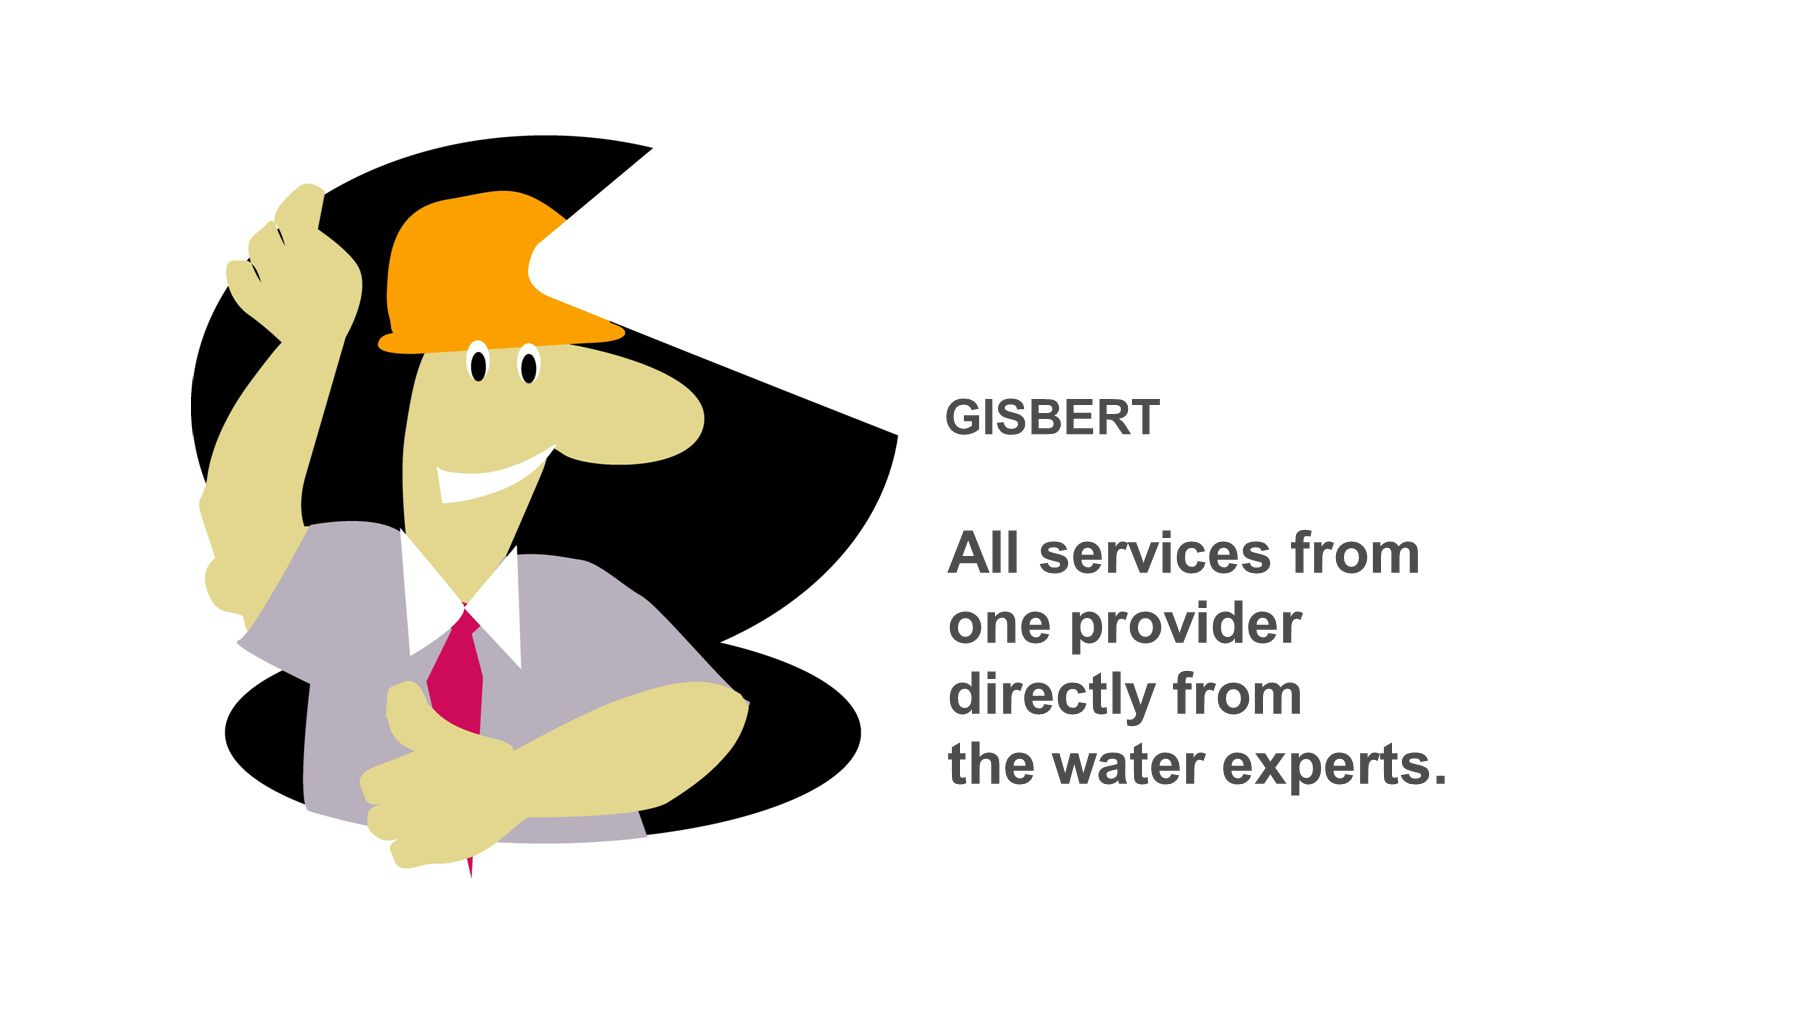 All services from one provider directly from the water experts. GISBERT